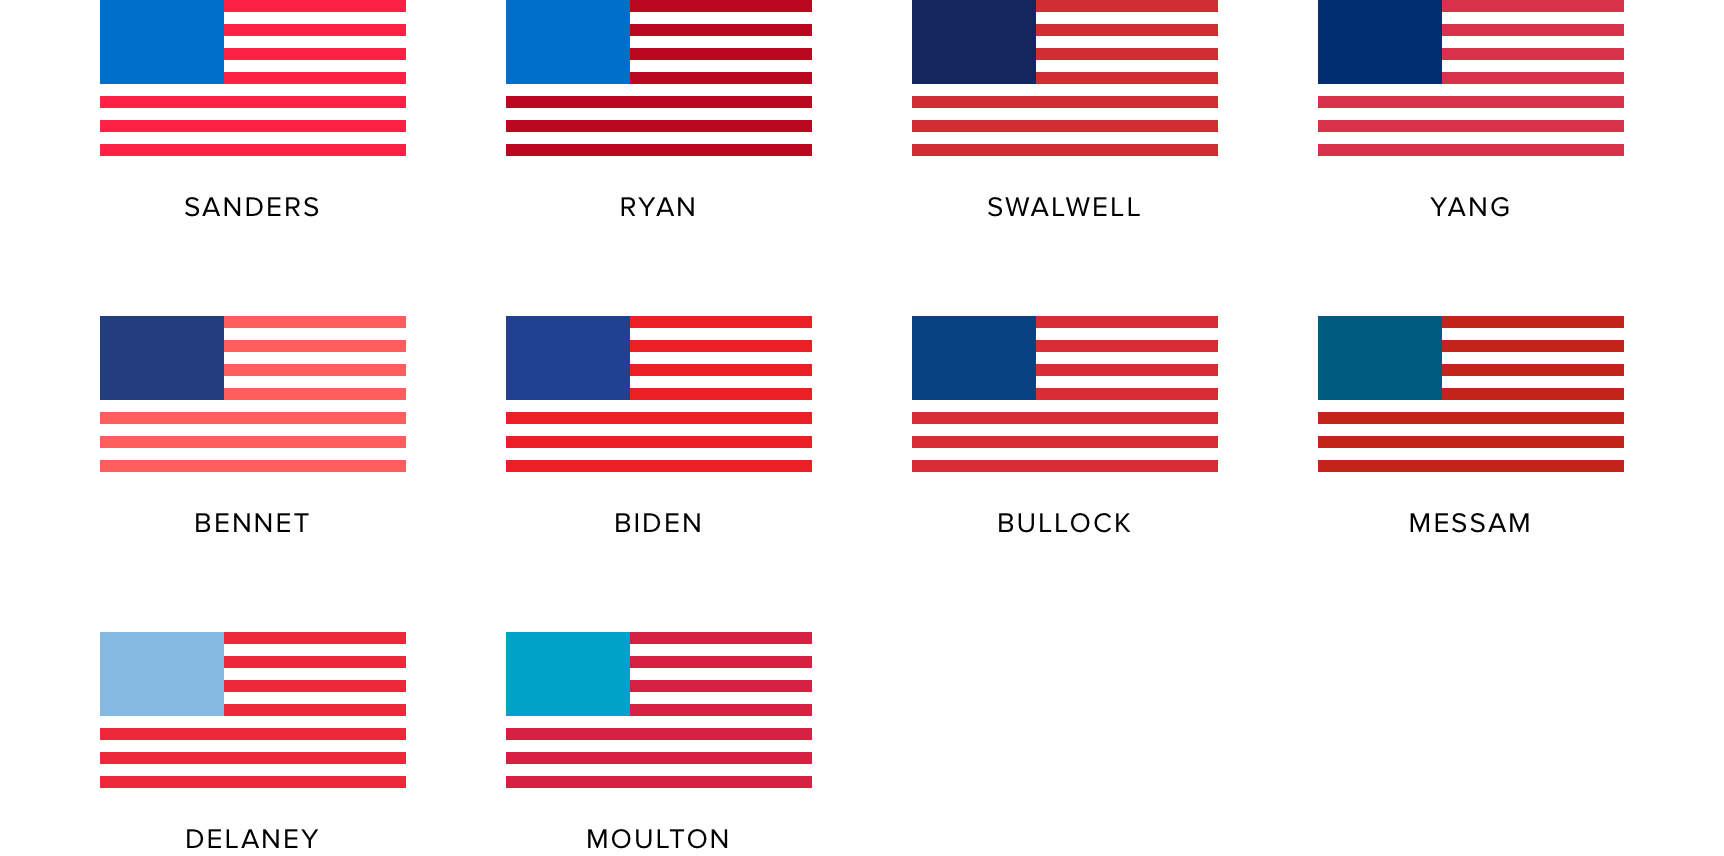 Traditional campaign colors